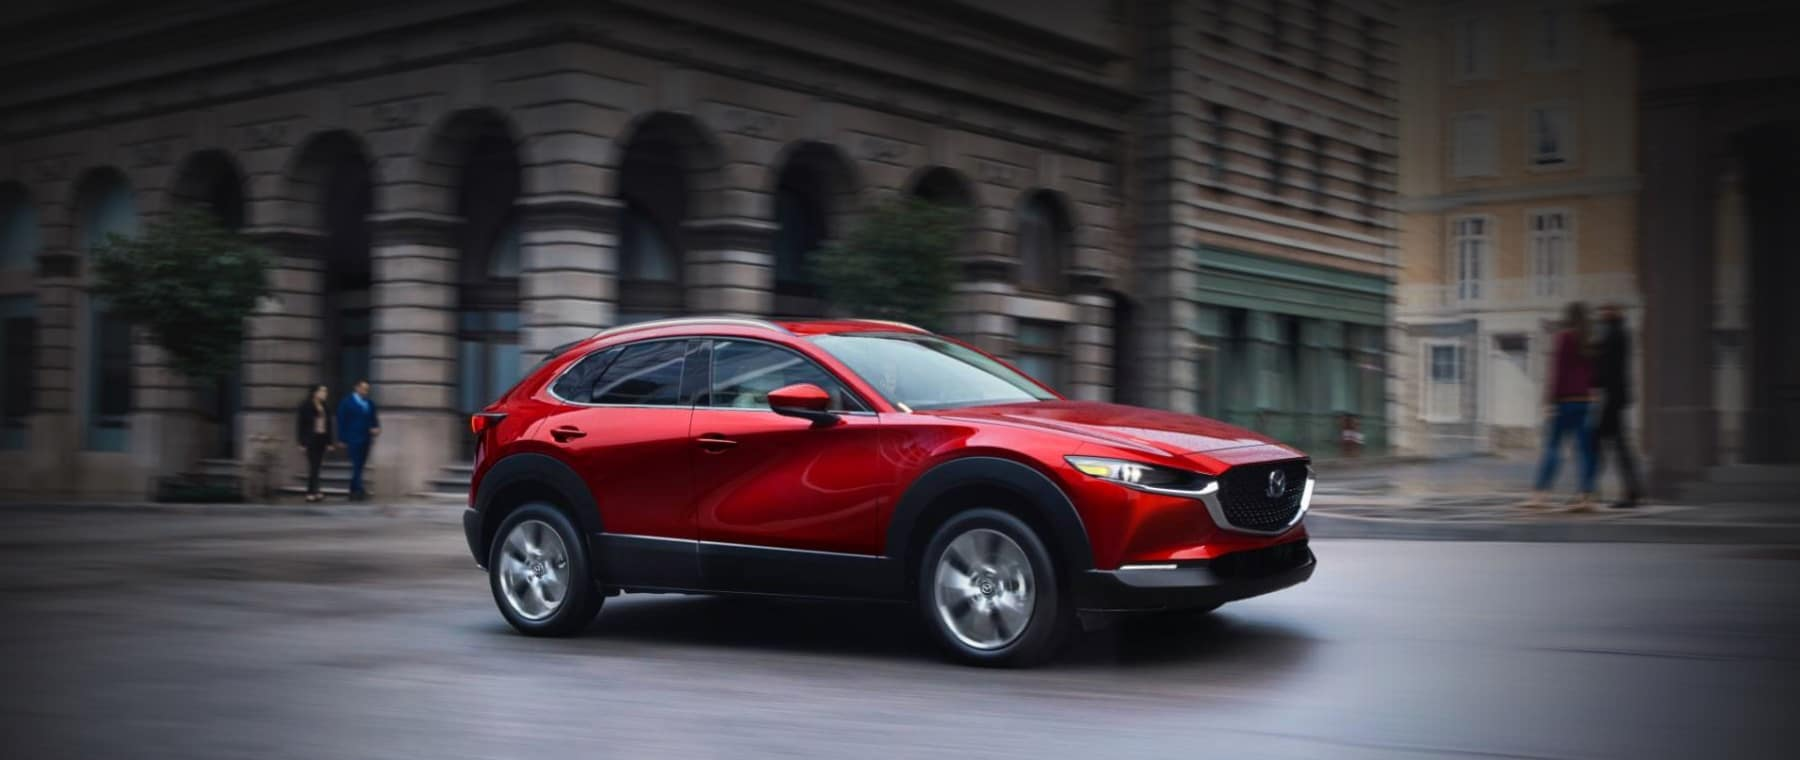 red Mazda SUV parked